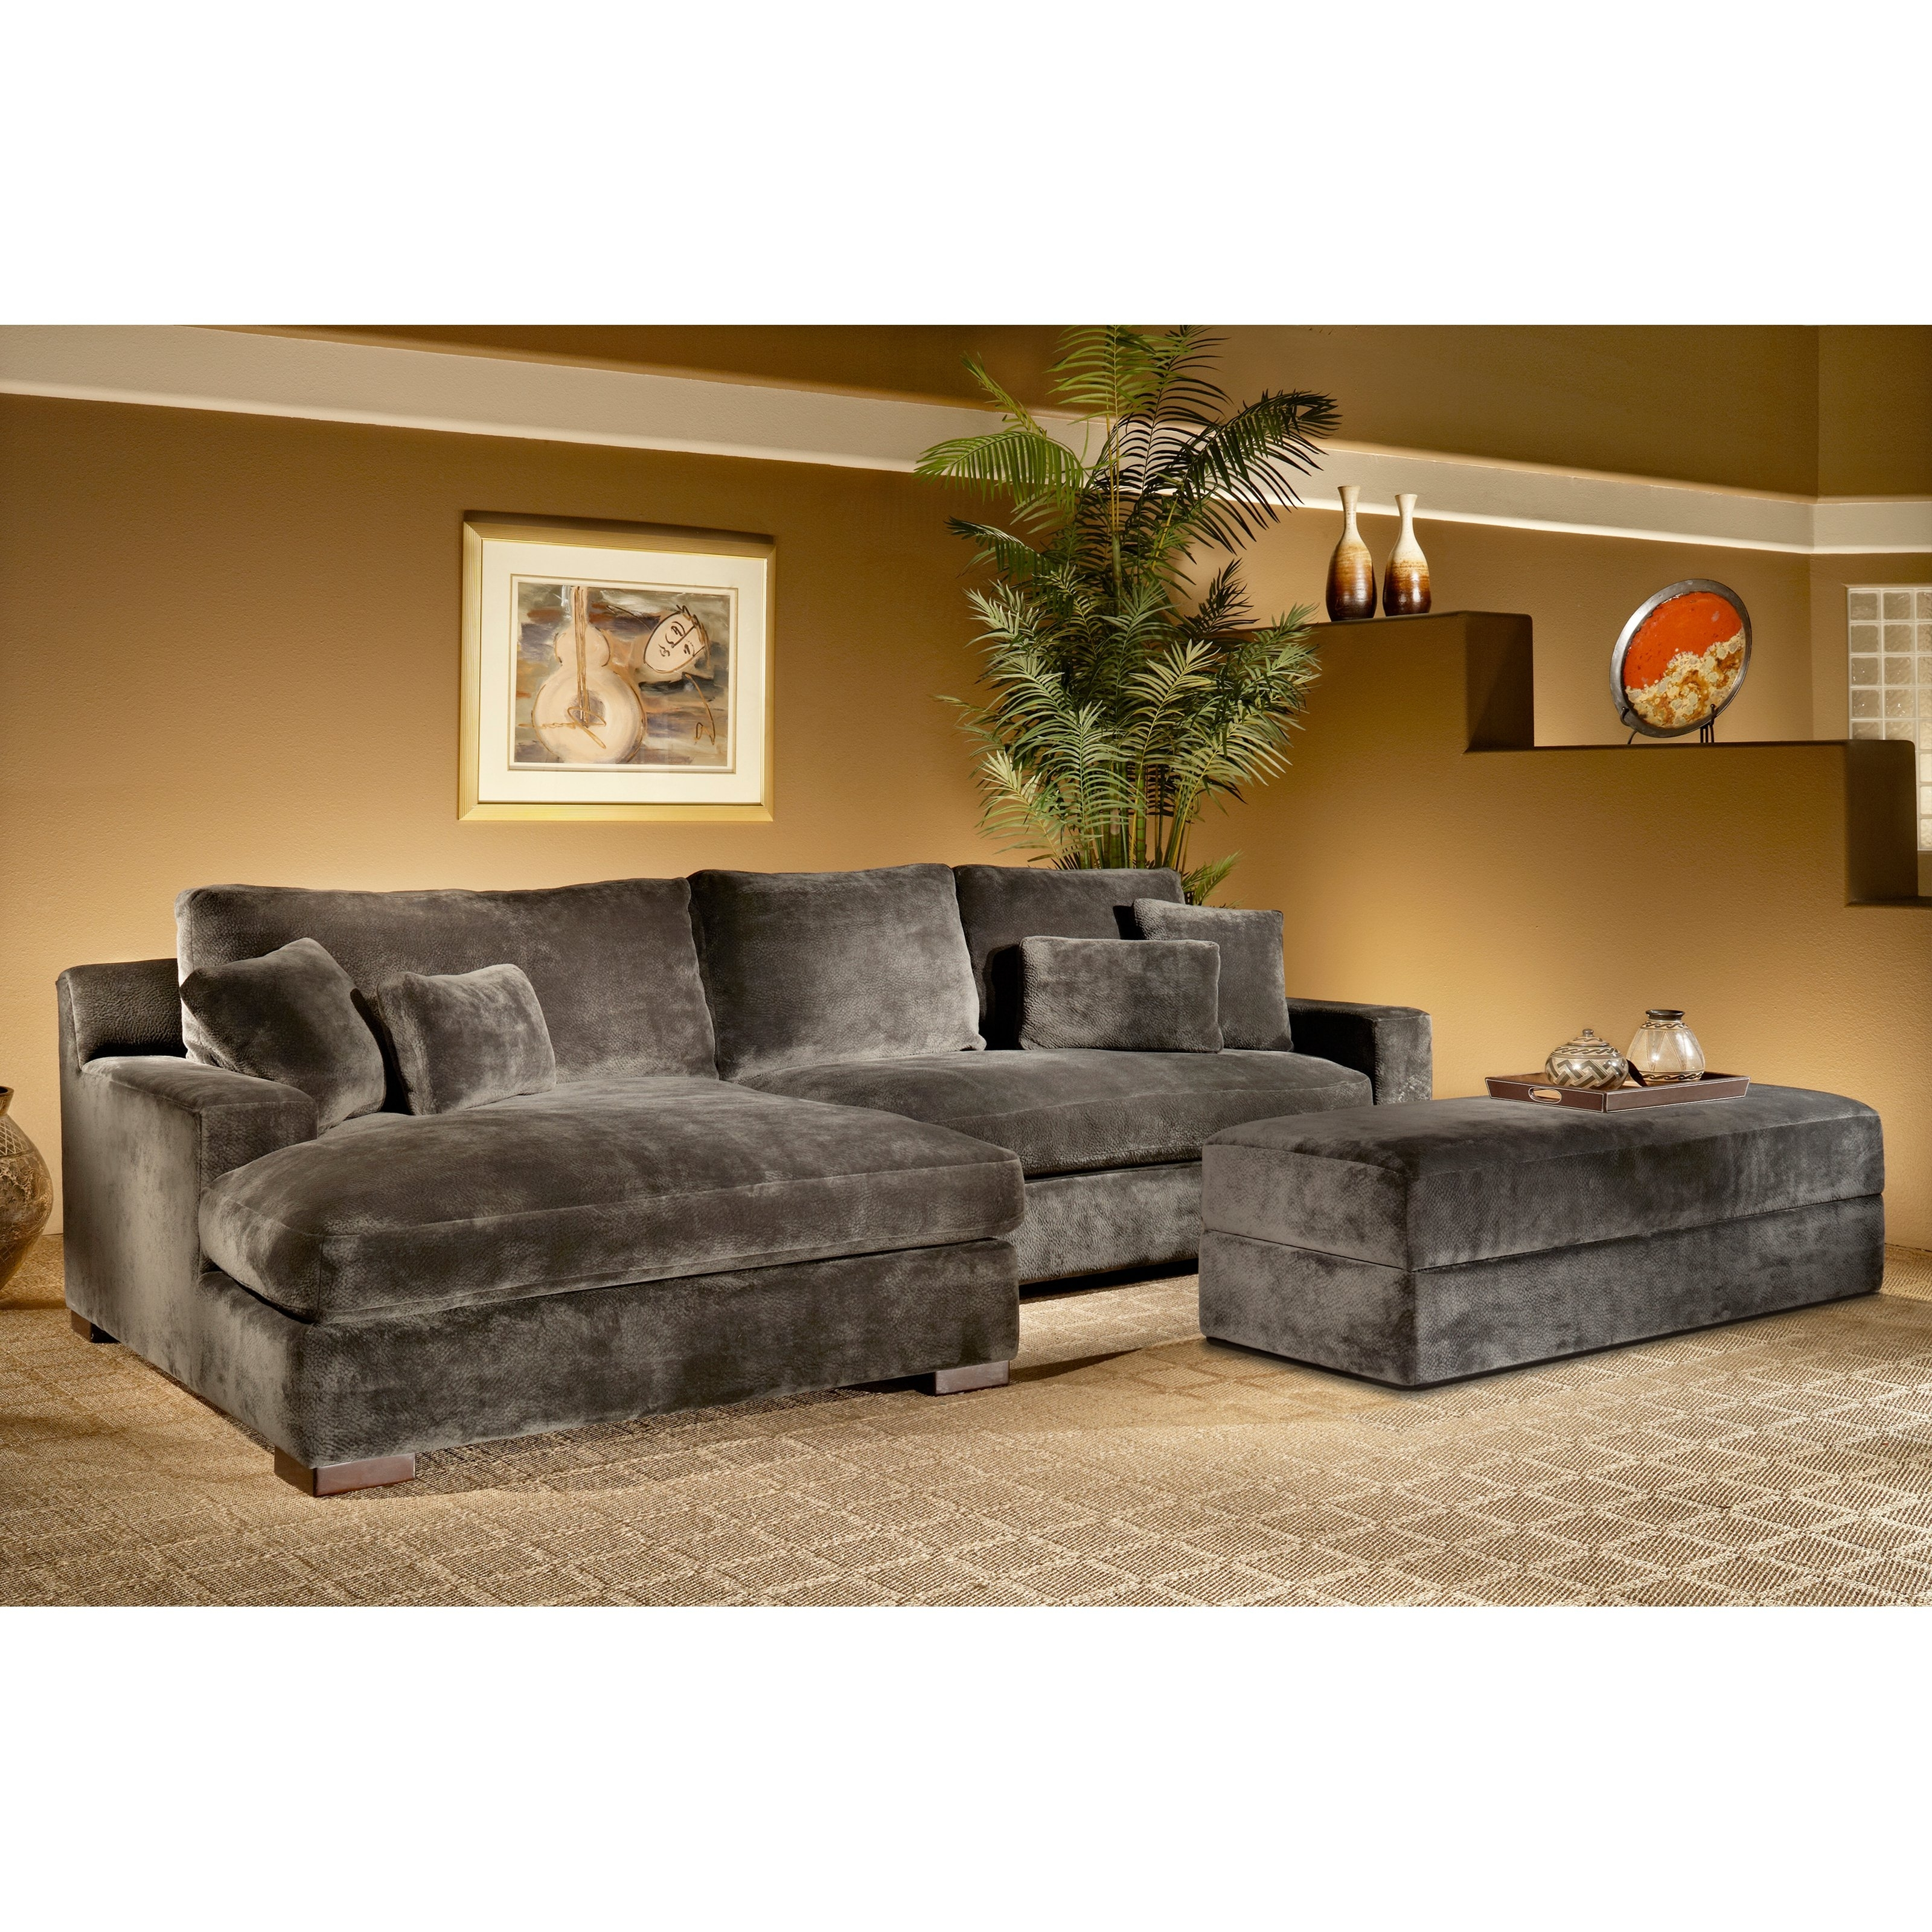 Excellent 2 Piece Sectional Sofa In Fairmont Designs Doris 2 Piece With Regard To Aspen 2 Piece Sectionals With Raf Chaise (View 25 of 25)